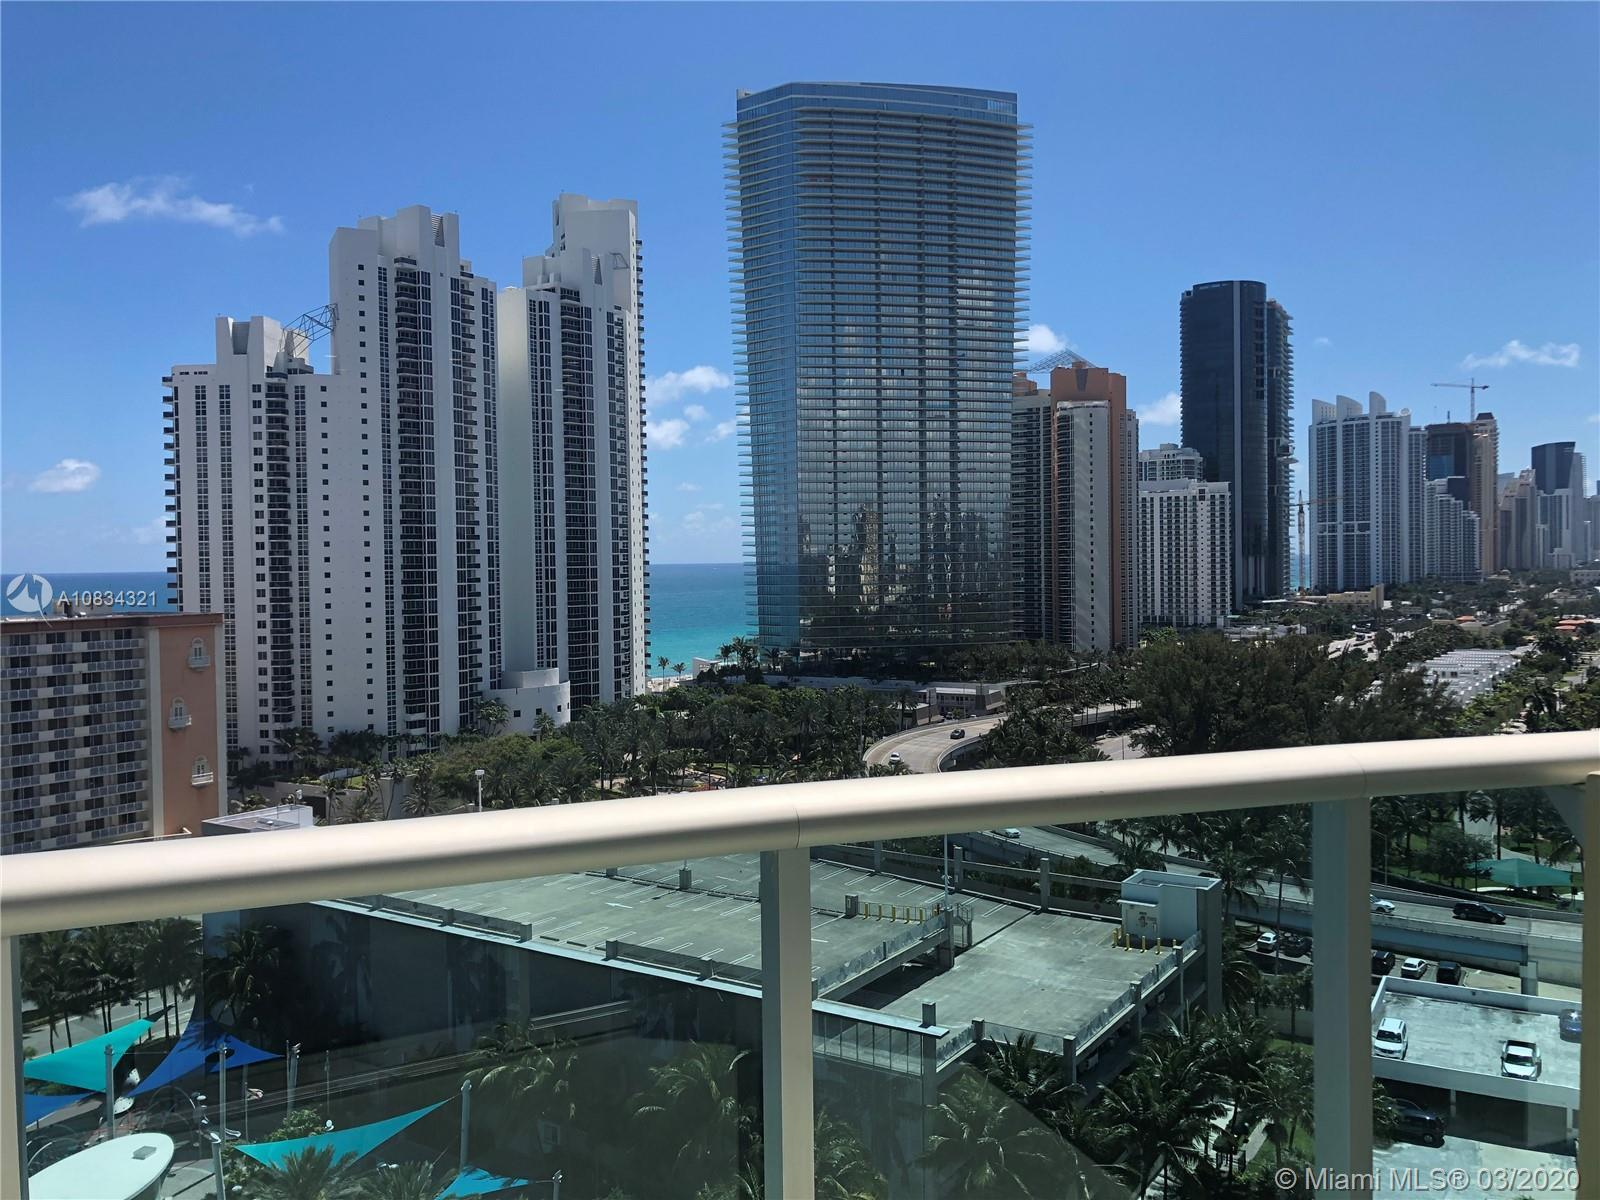 BEAUTIFUL FULLY REMODELED 1BR 1,5 BATHROOM PH UNIT WITH HIGH CEILINGS AND DIRECT OCEAN VIEW IN 5 STA